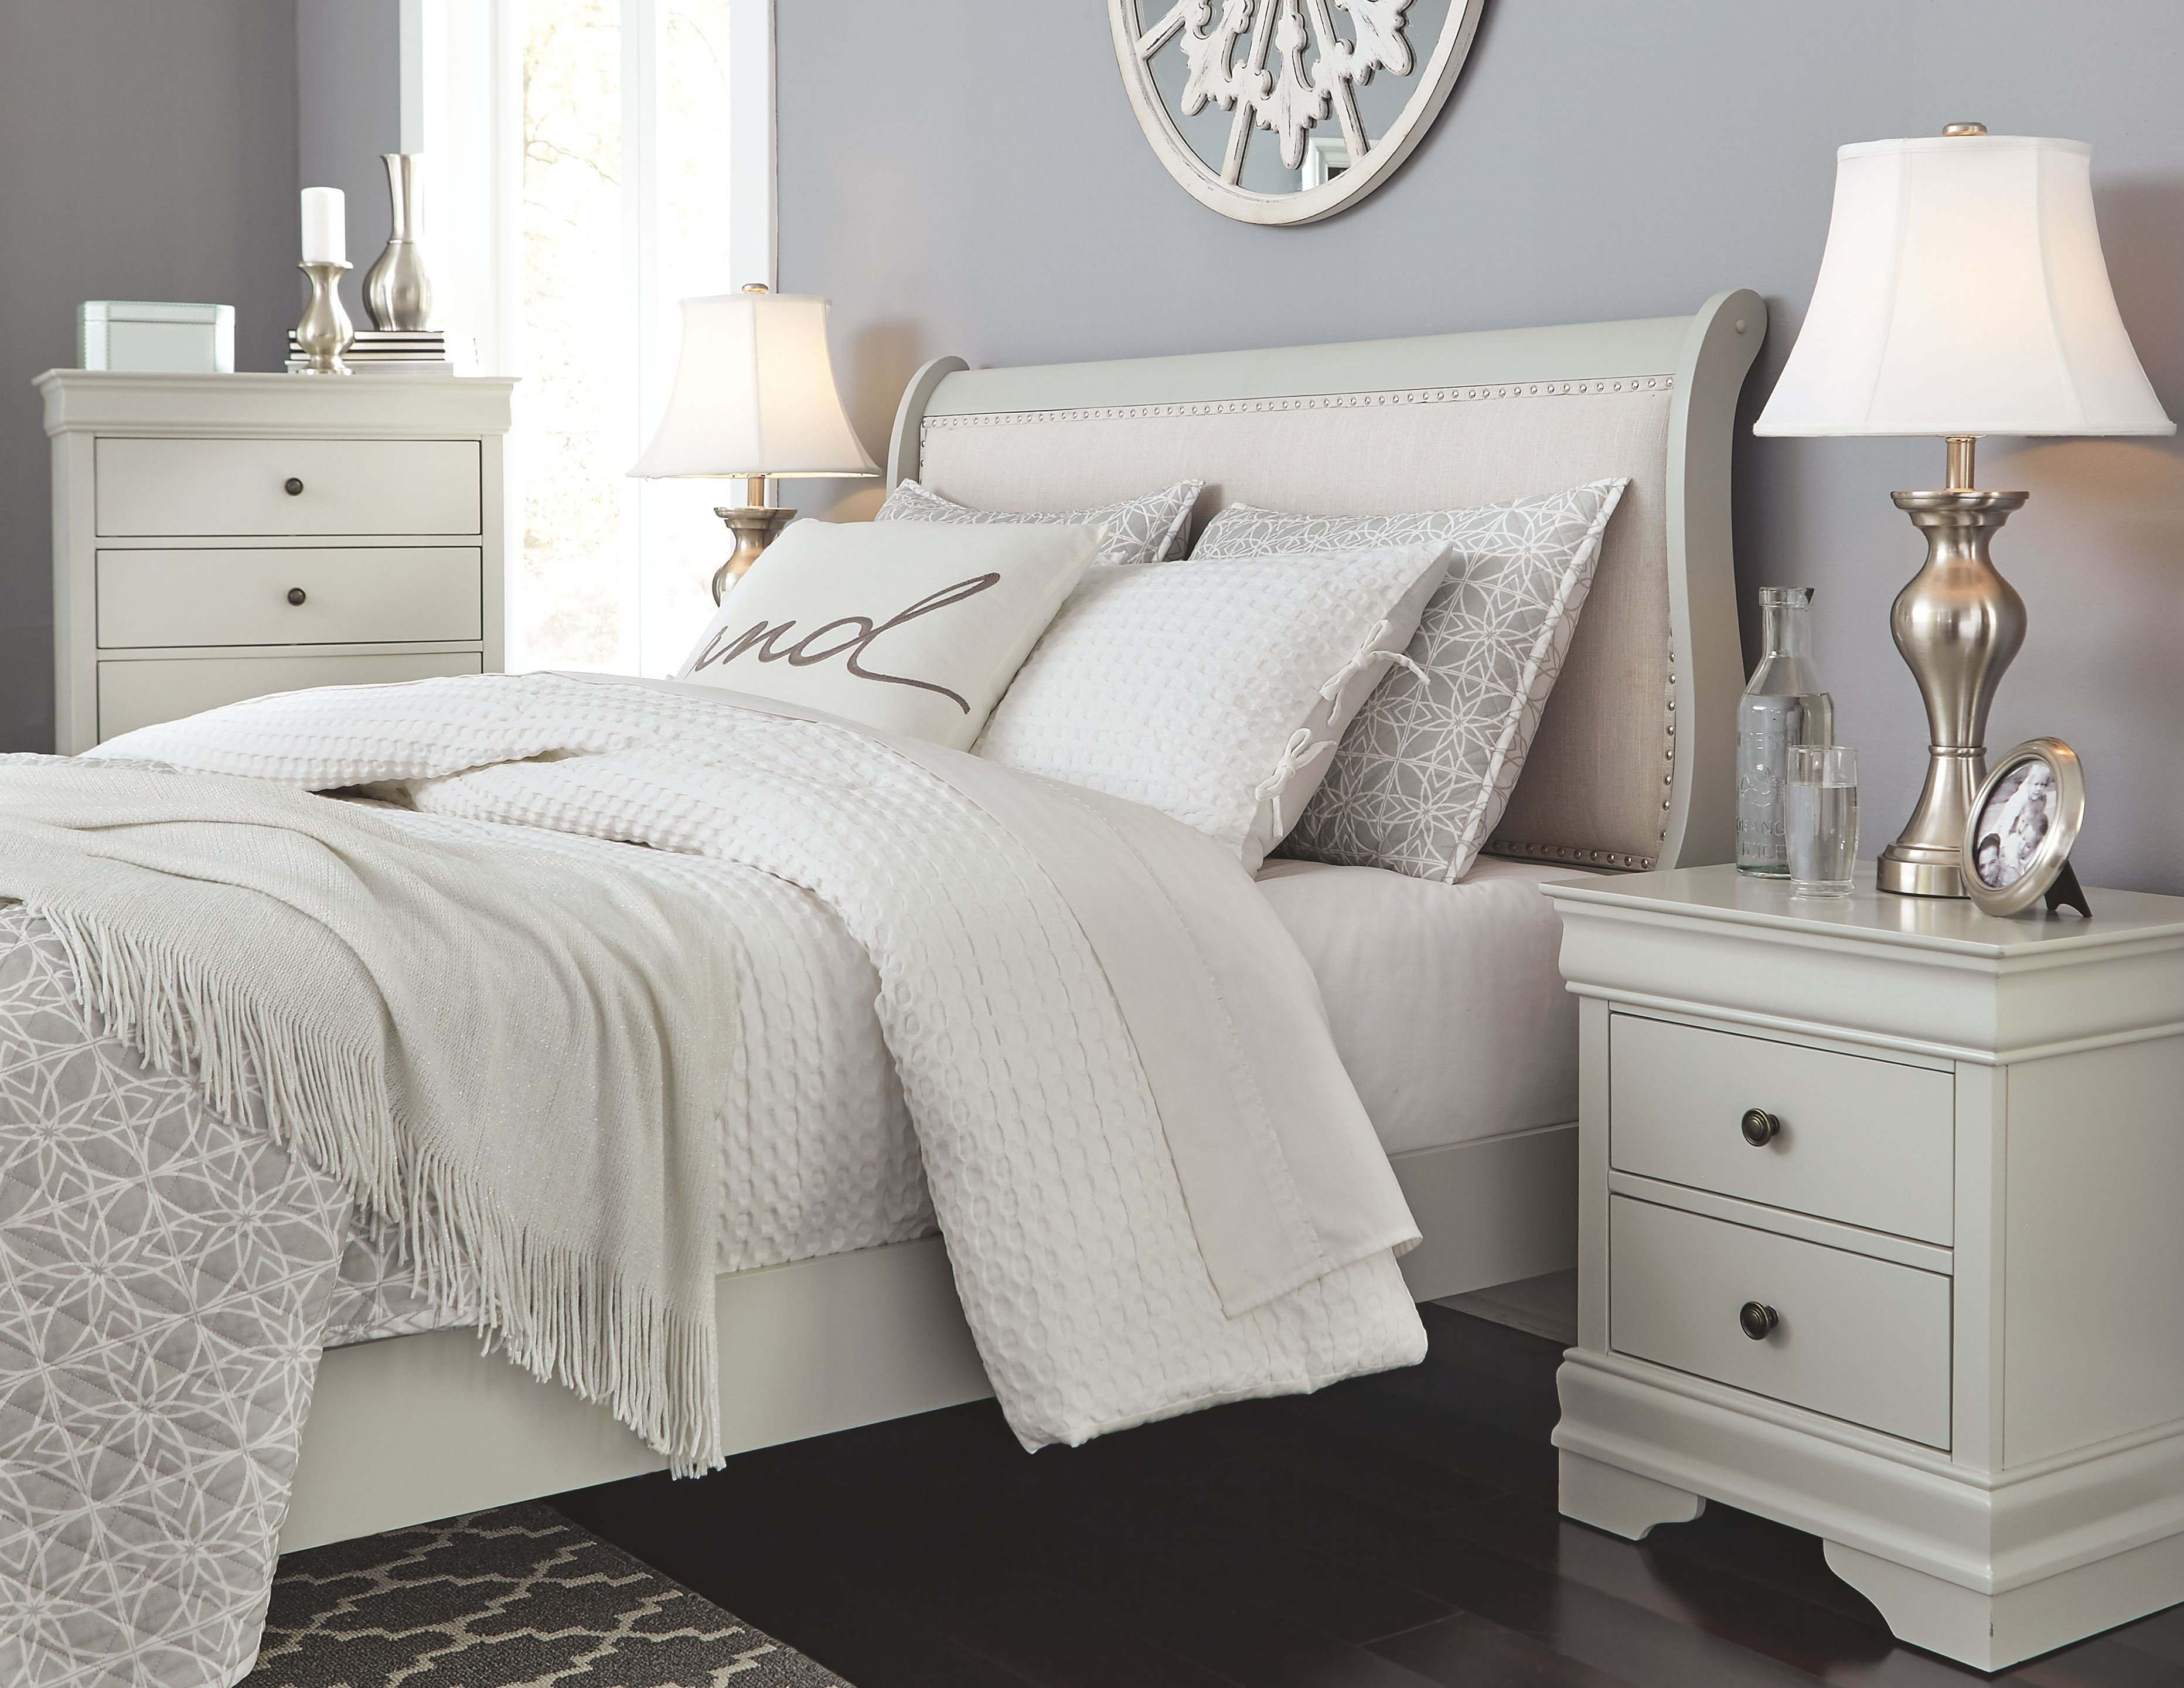 Fancy Chairs for Bedroom Beautiful Jorstad Full Bed with 2 Nightstands Gray